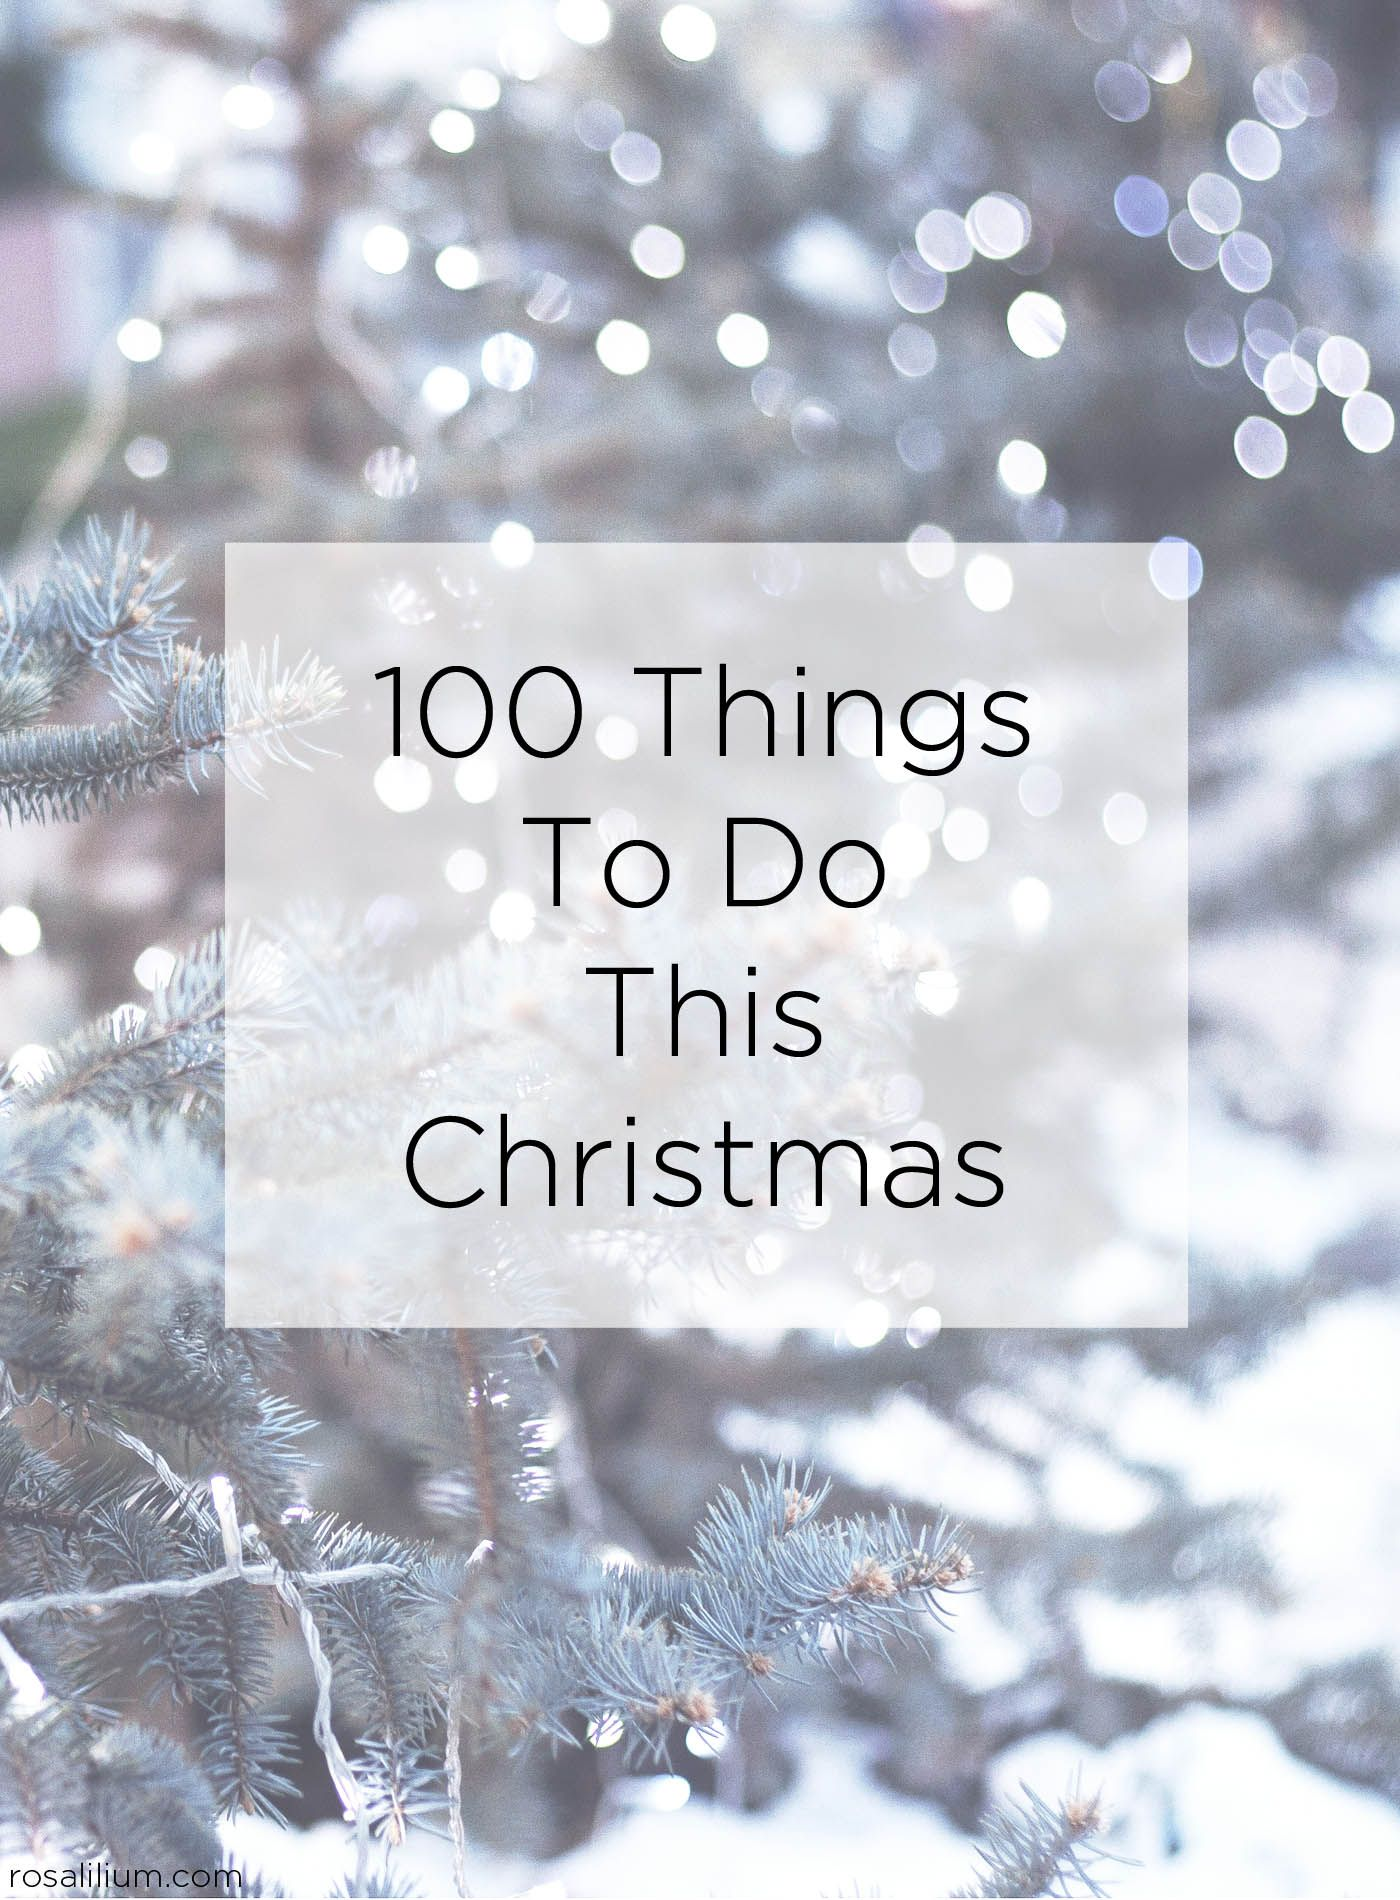 100 Things To Do This Christmas | Christmas Printables | Pinterest ...